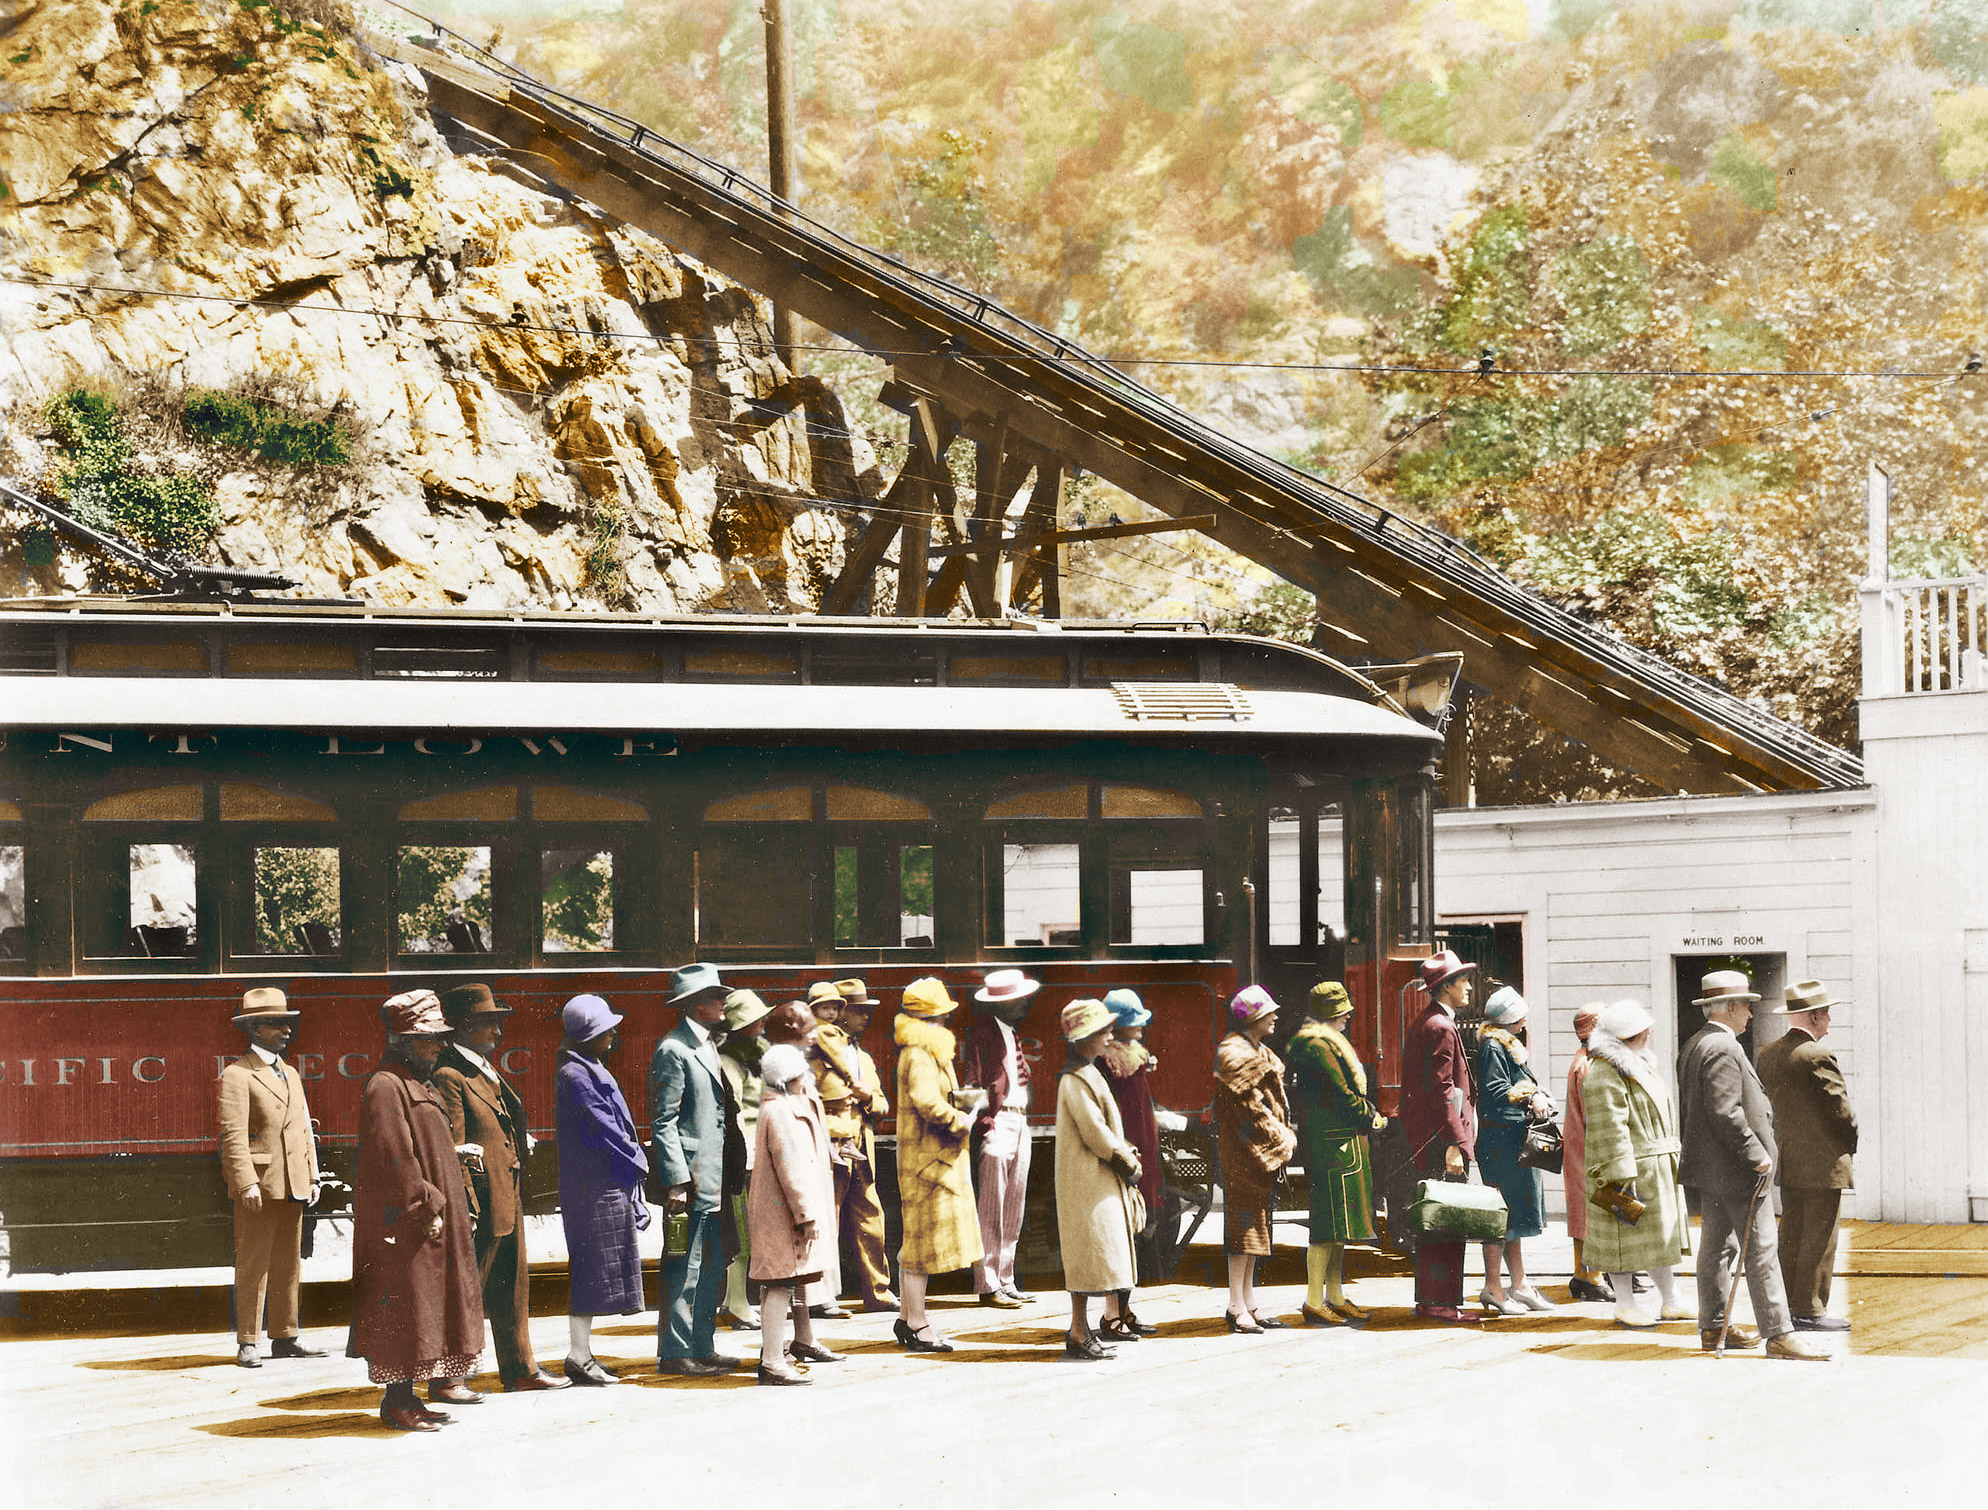 Here is a hand-colored image that was originally shot by Charles Lawrence, the official photographer of the Pacific Electric Railway, colorized by San Diego resident and railfan Bjorn Palenius. He has enhanced this image for everyone to enjoy, and we are grateful for his efforts and contributions. Charles Lawrence Photo, Bjorn Palenius Colorization